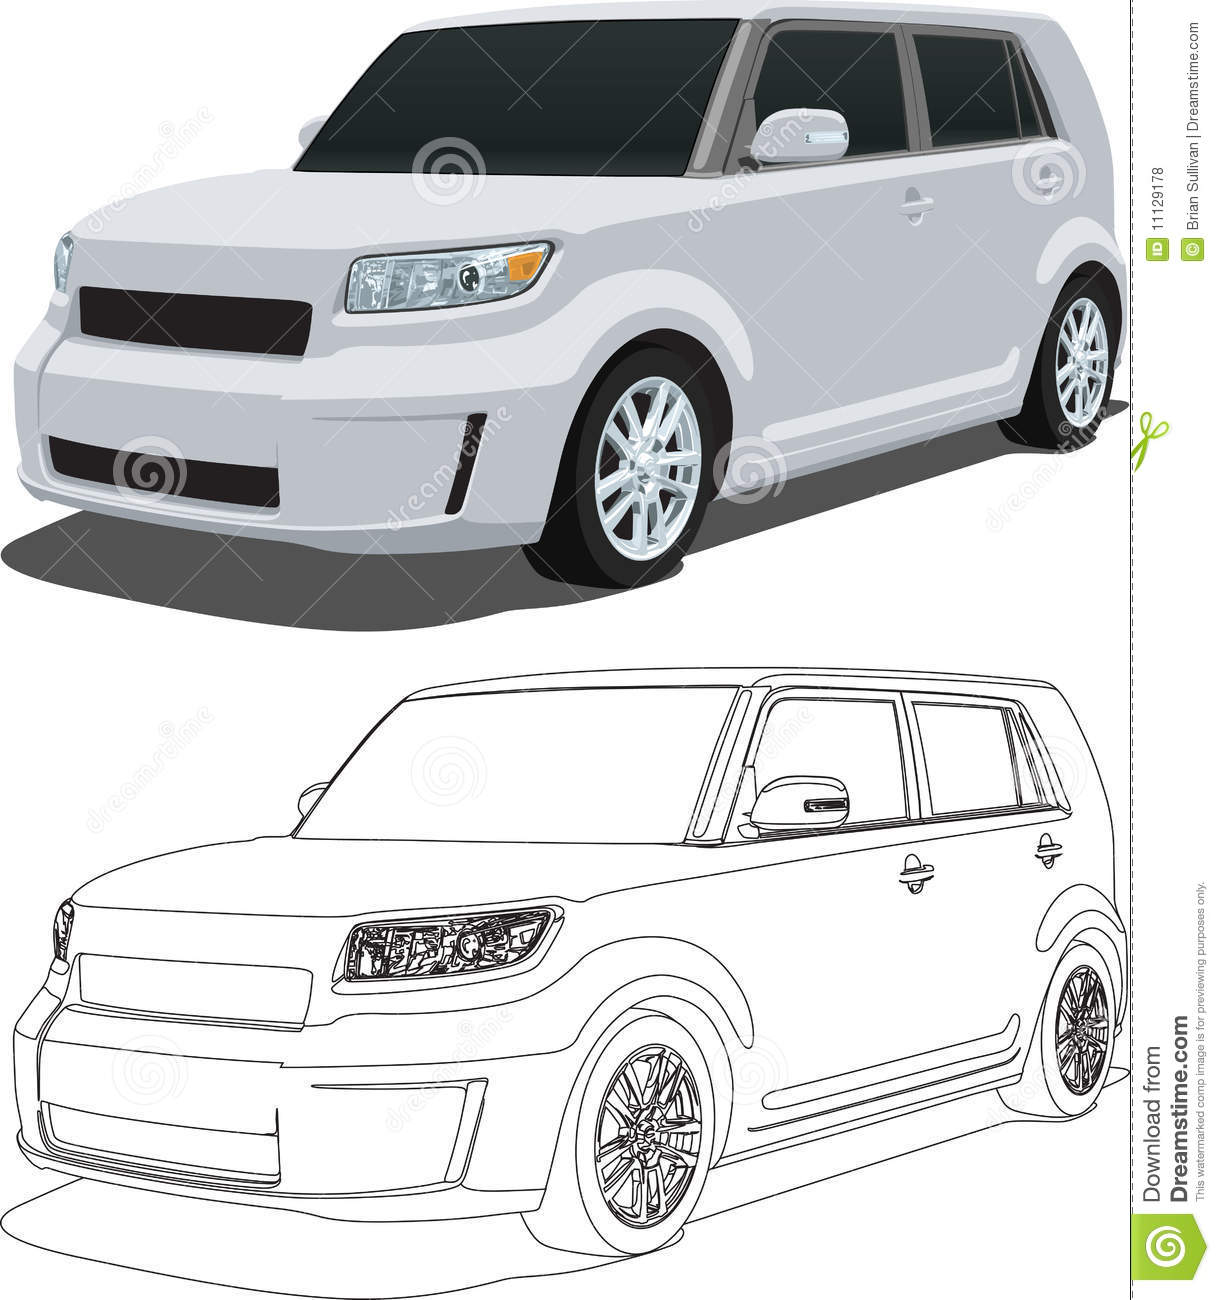 Scion Business Plan Help✏️ >> Purchase term papers